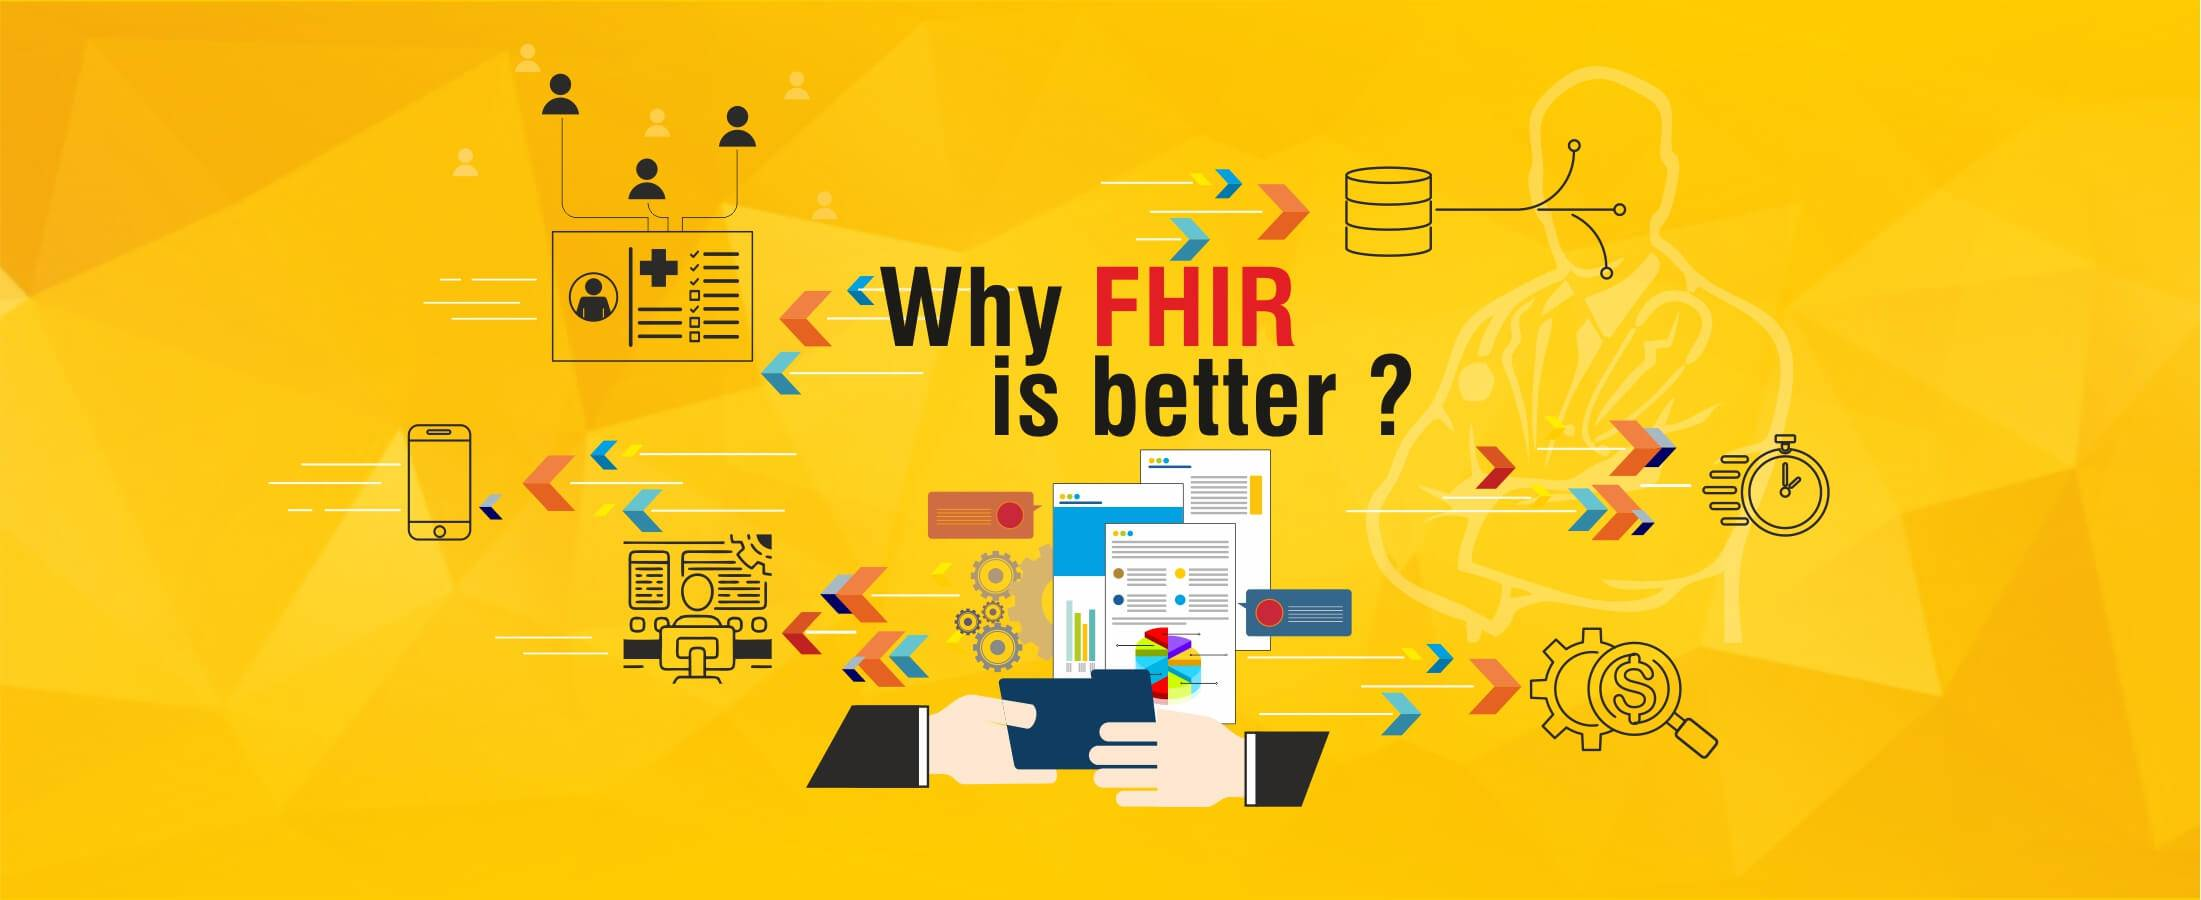 Mobifilia - Why FHIR is Better?